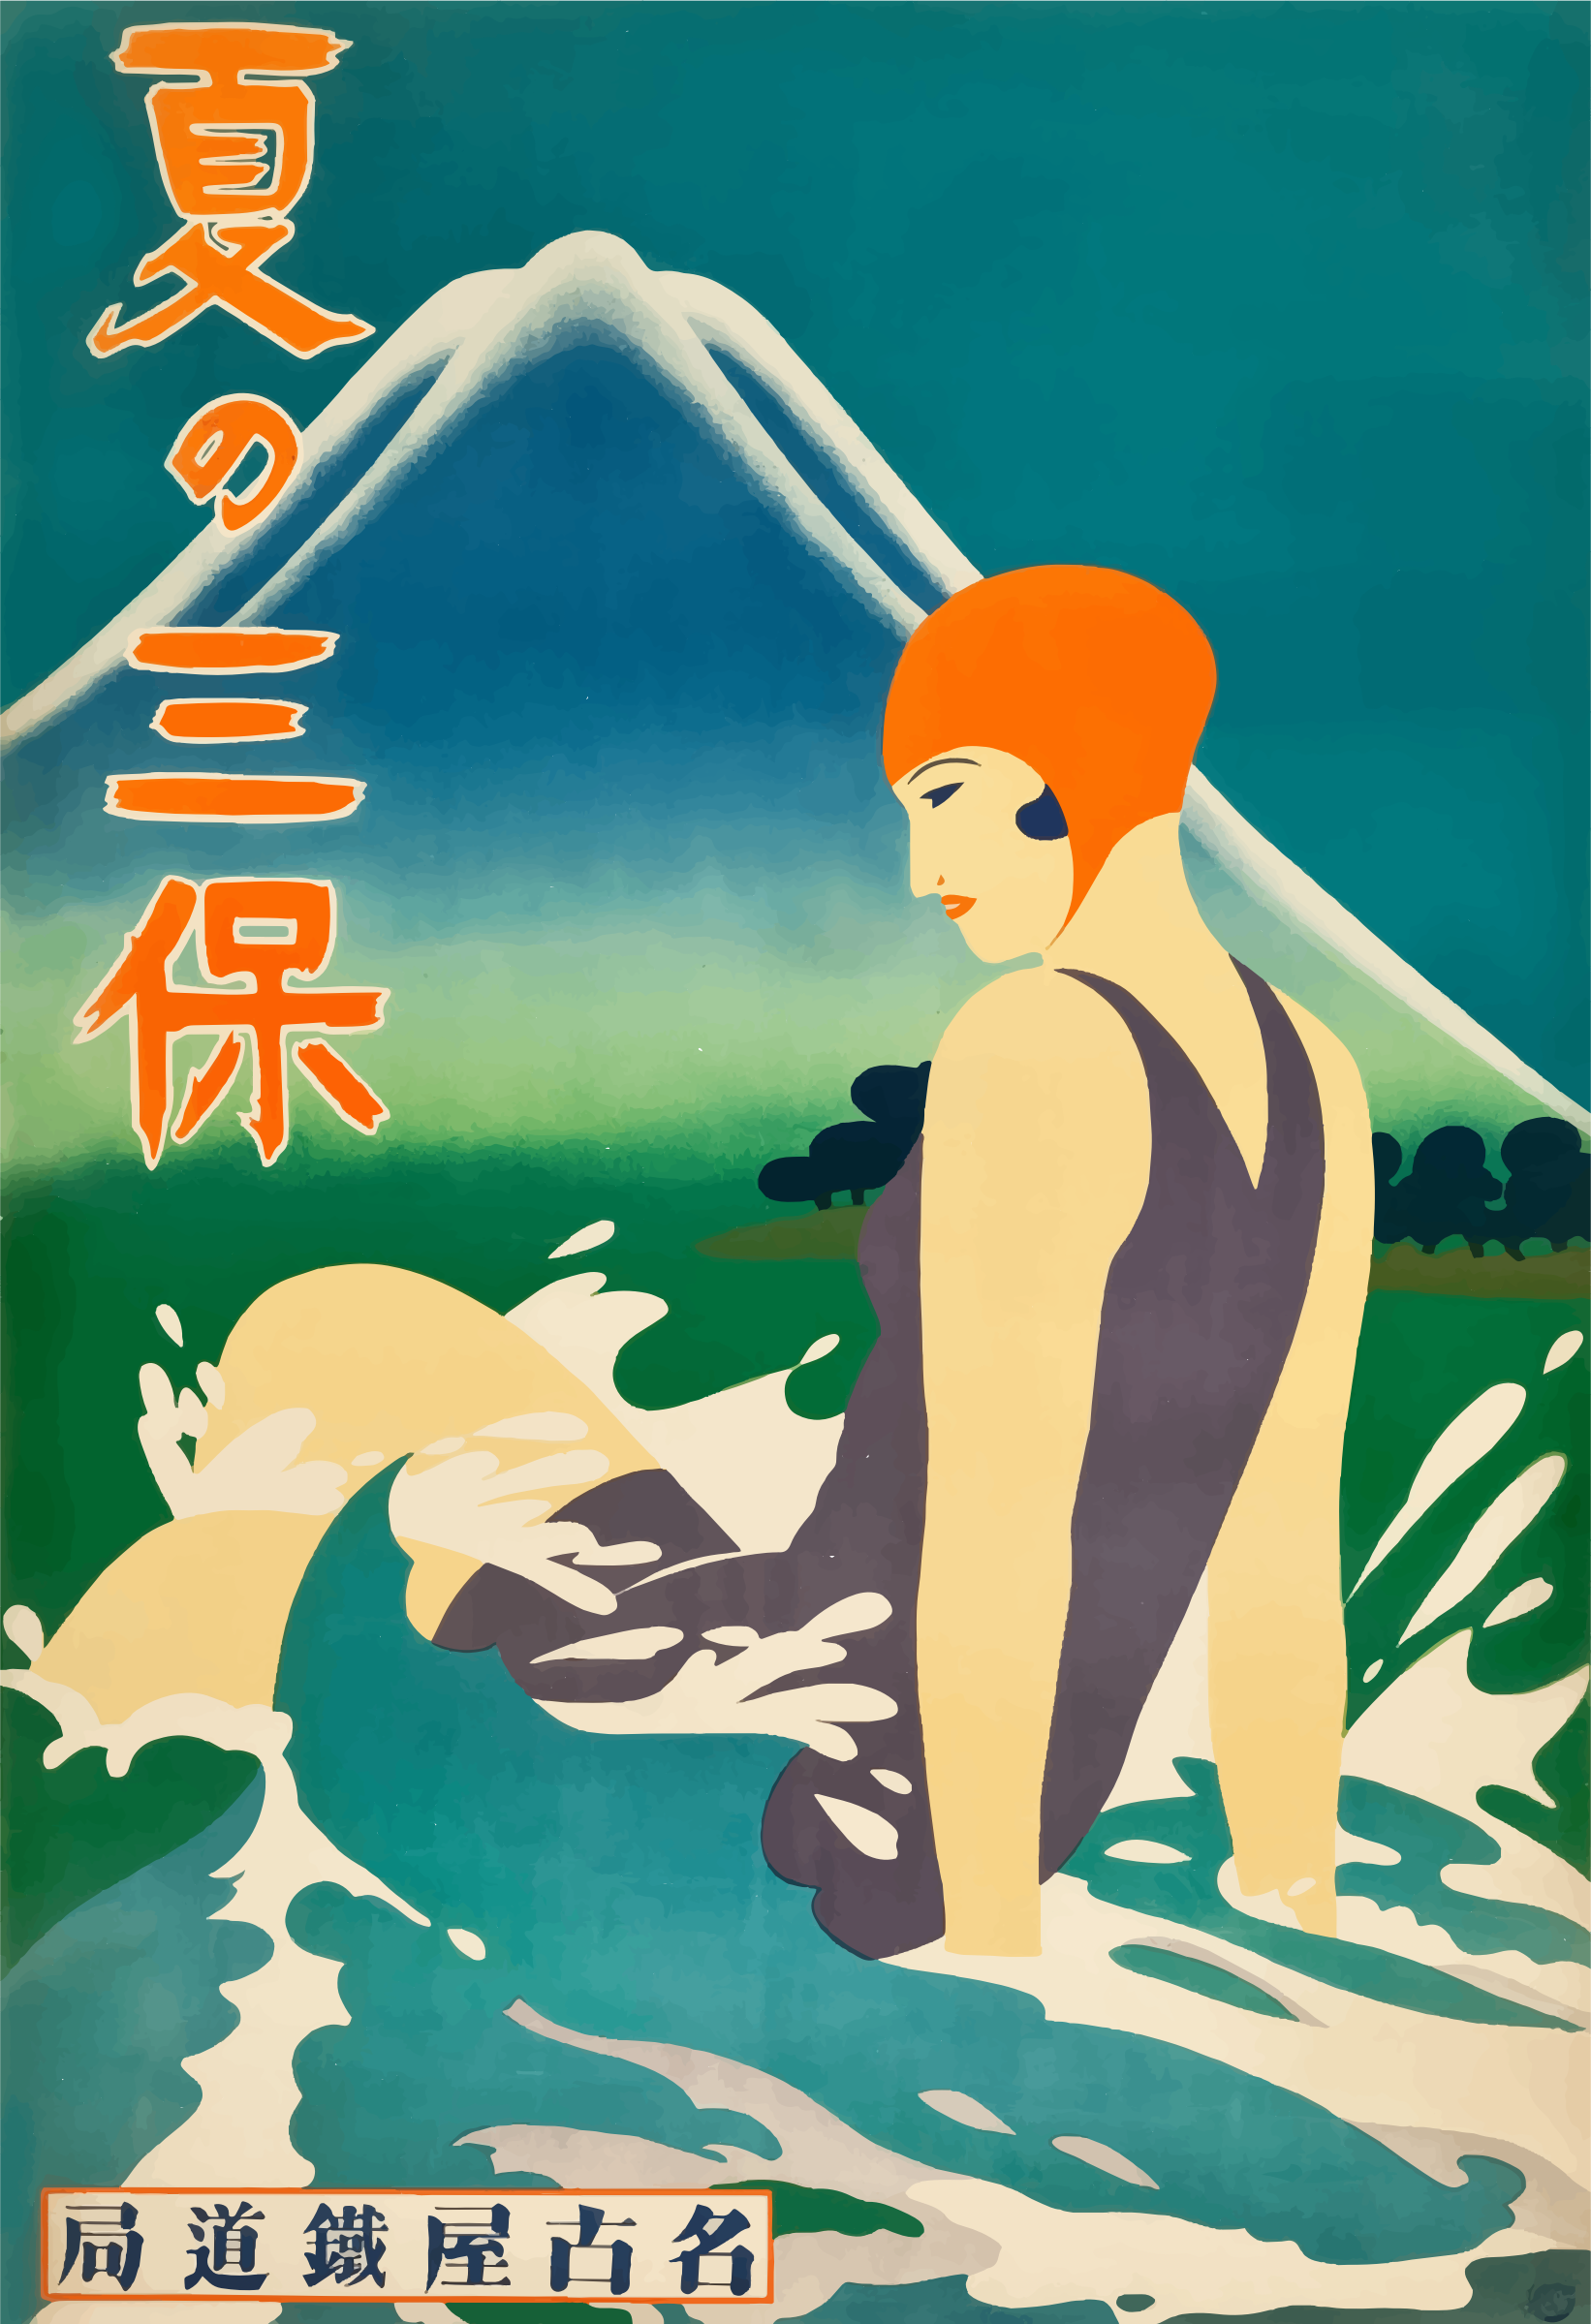 Vintage Travel Poster 1930s Japan 2 by GDJ